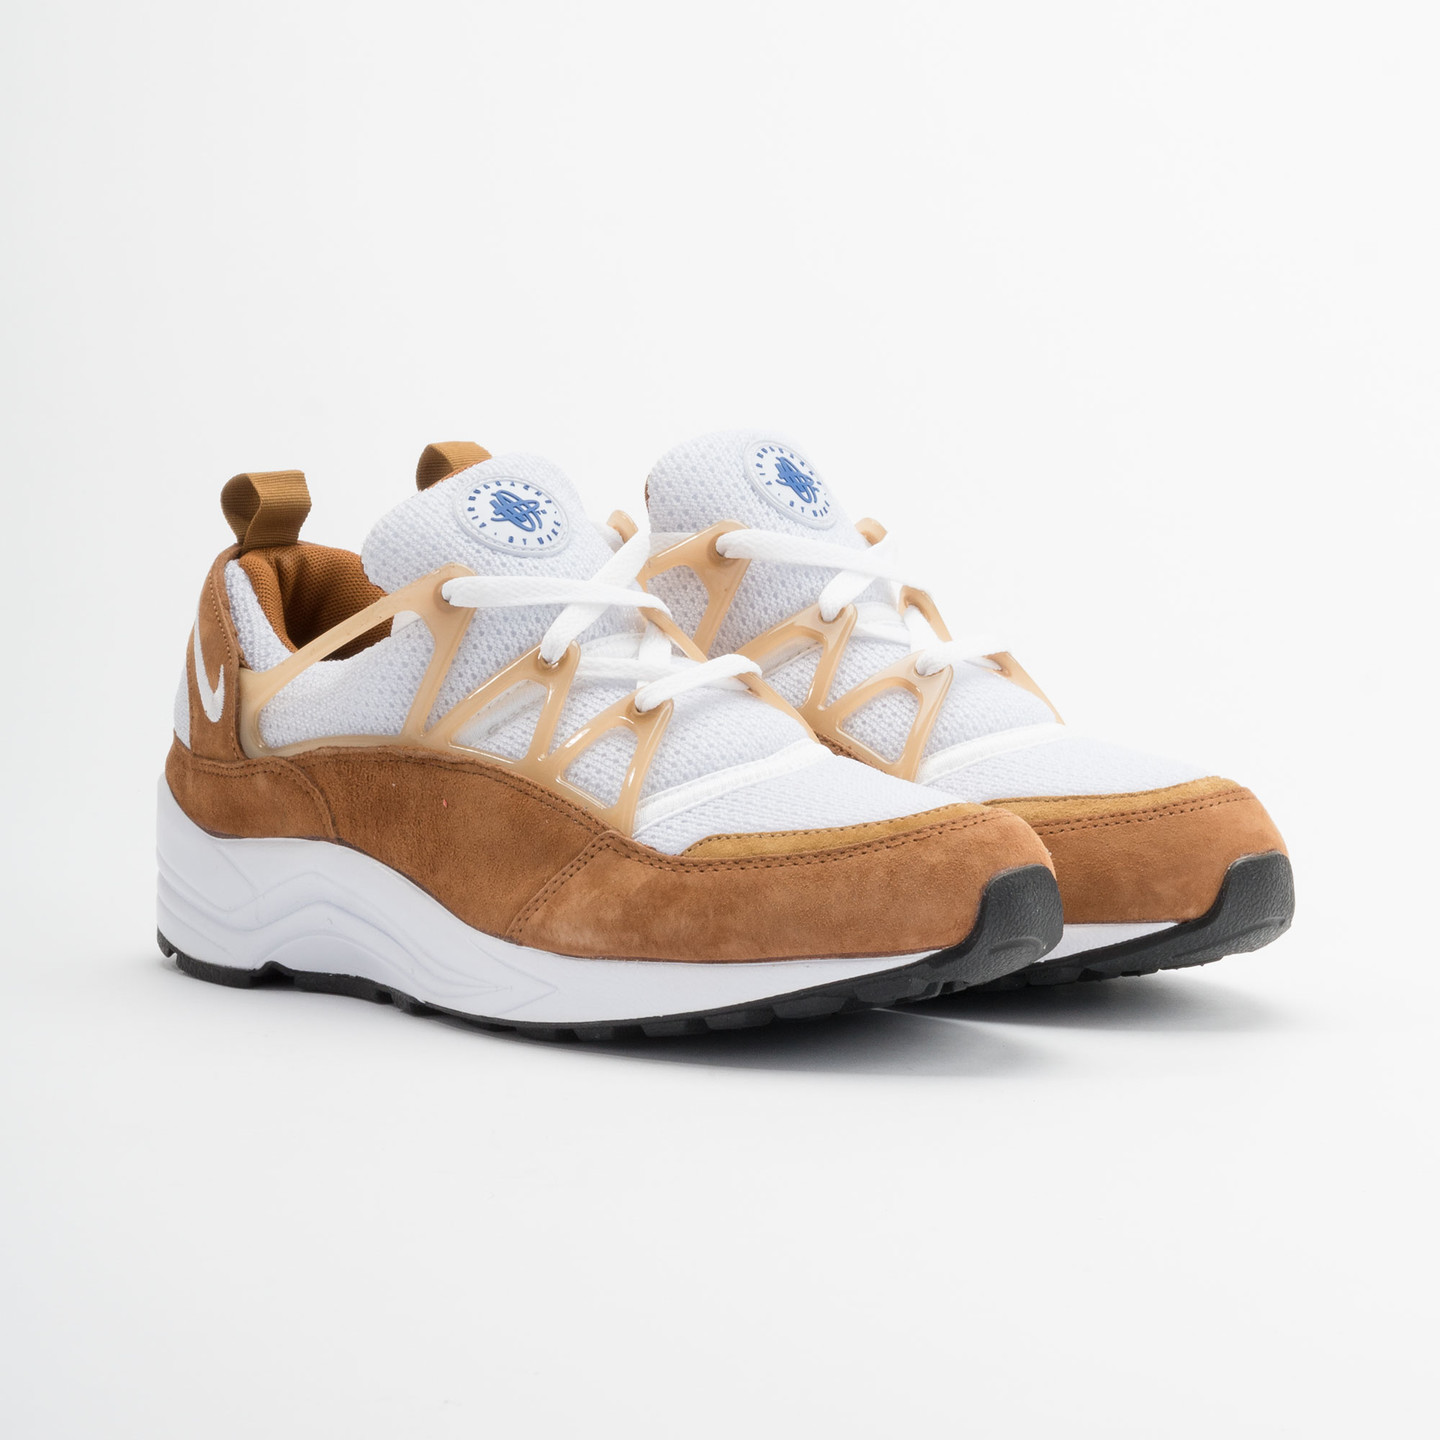 Nike Air Huarache Light Dark Curry / White-Wheat 306127-717-42